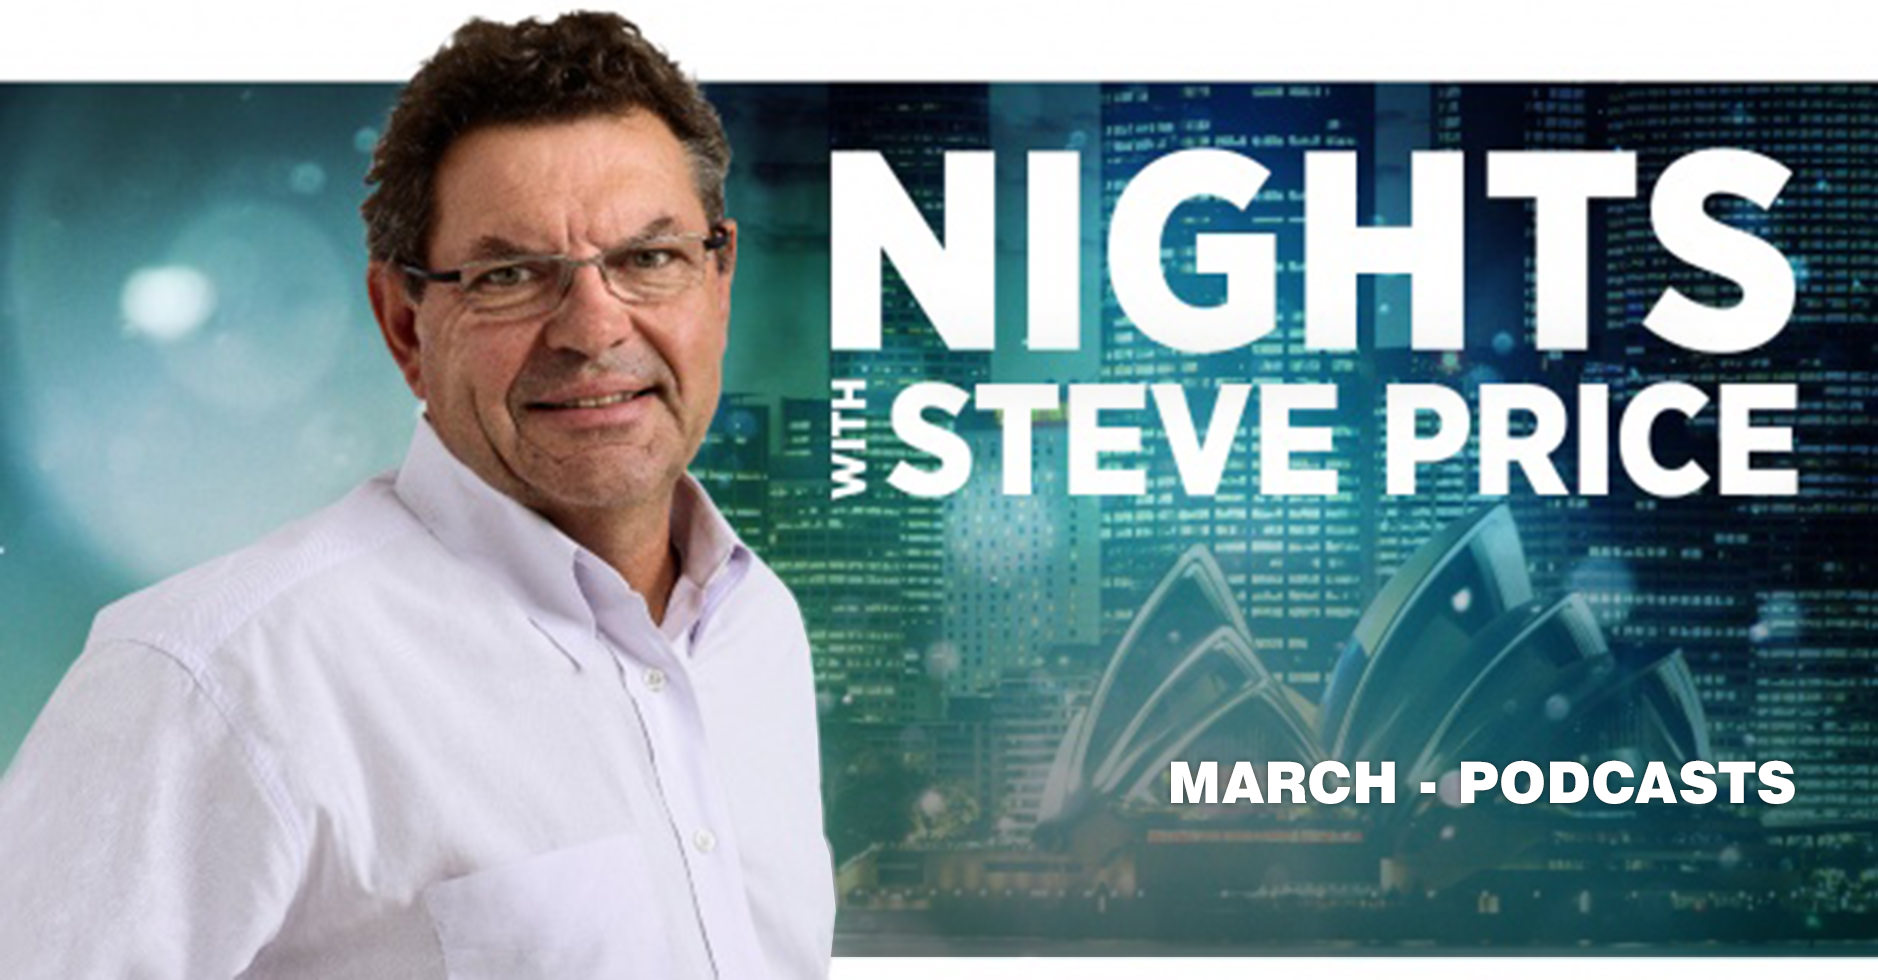 Nights StevePrice Hero March The Informed Investor: April 2018 Podcasts